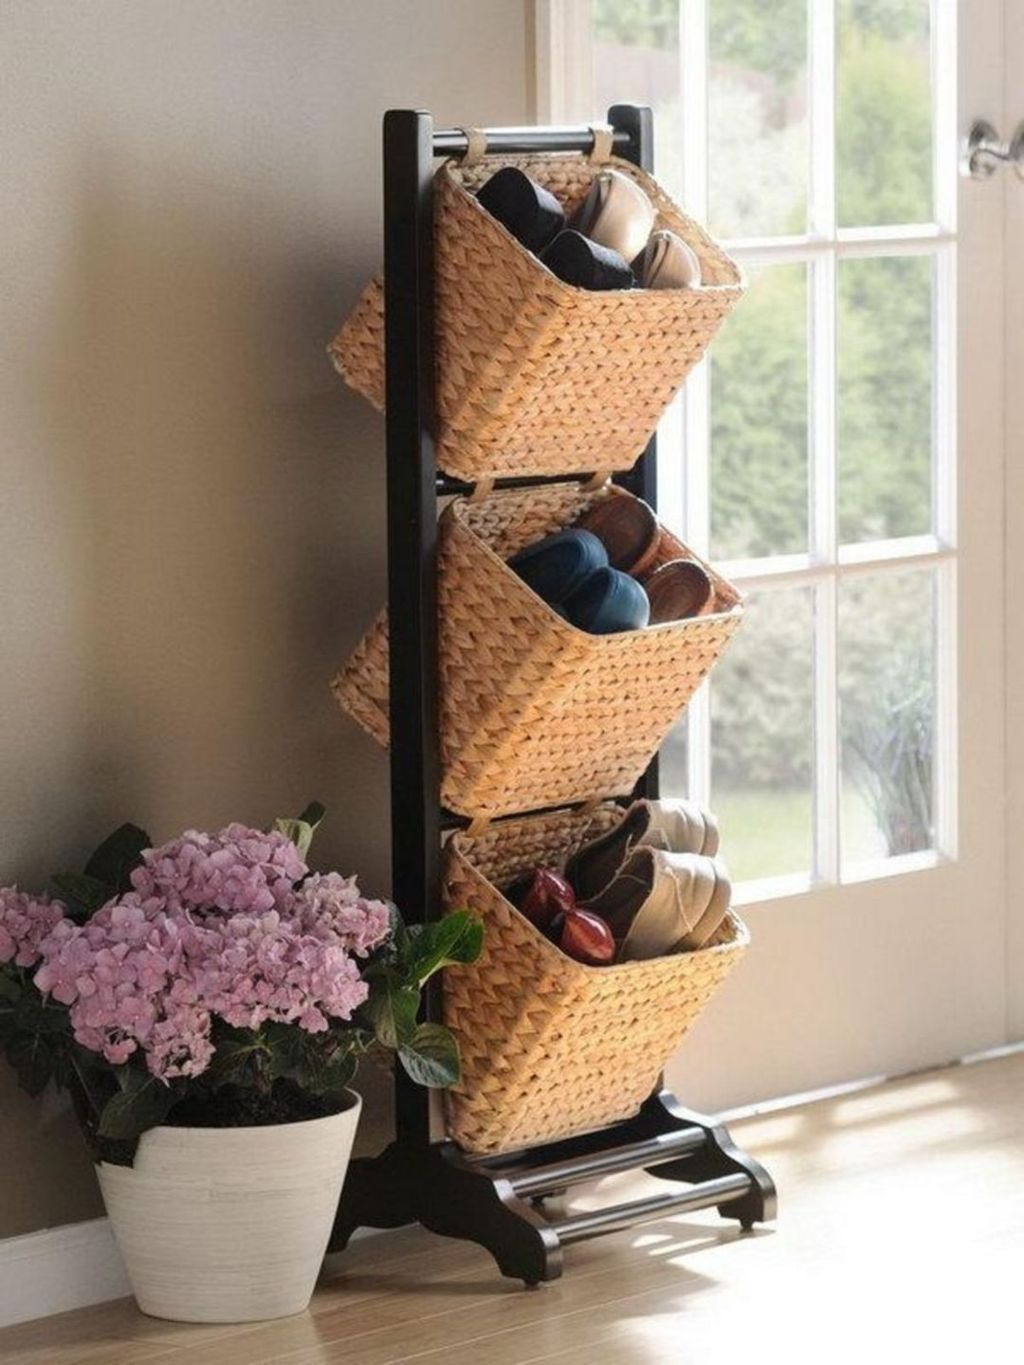 Outstanding Shoes Rack Design Ideas For Your Home22